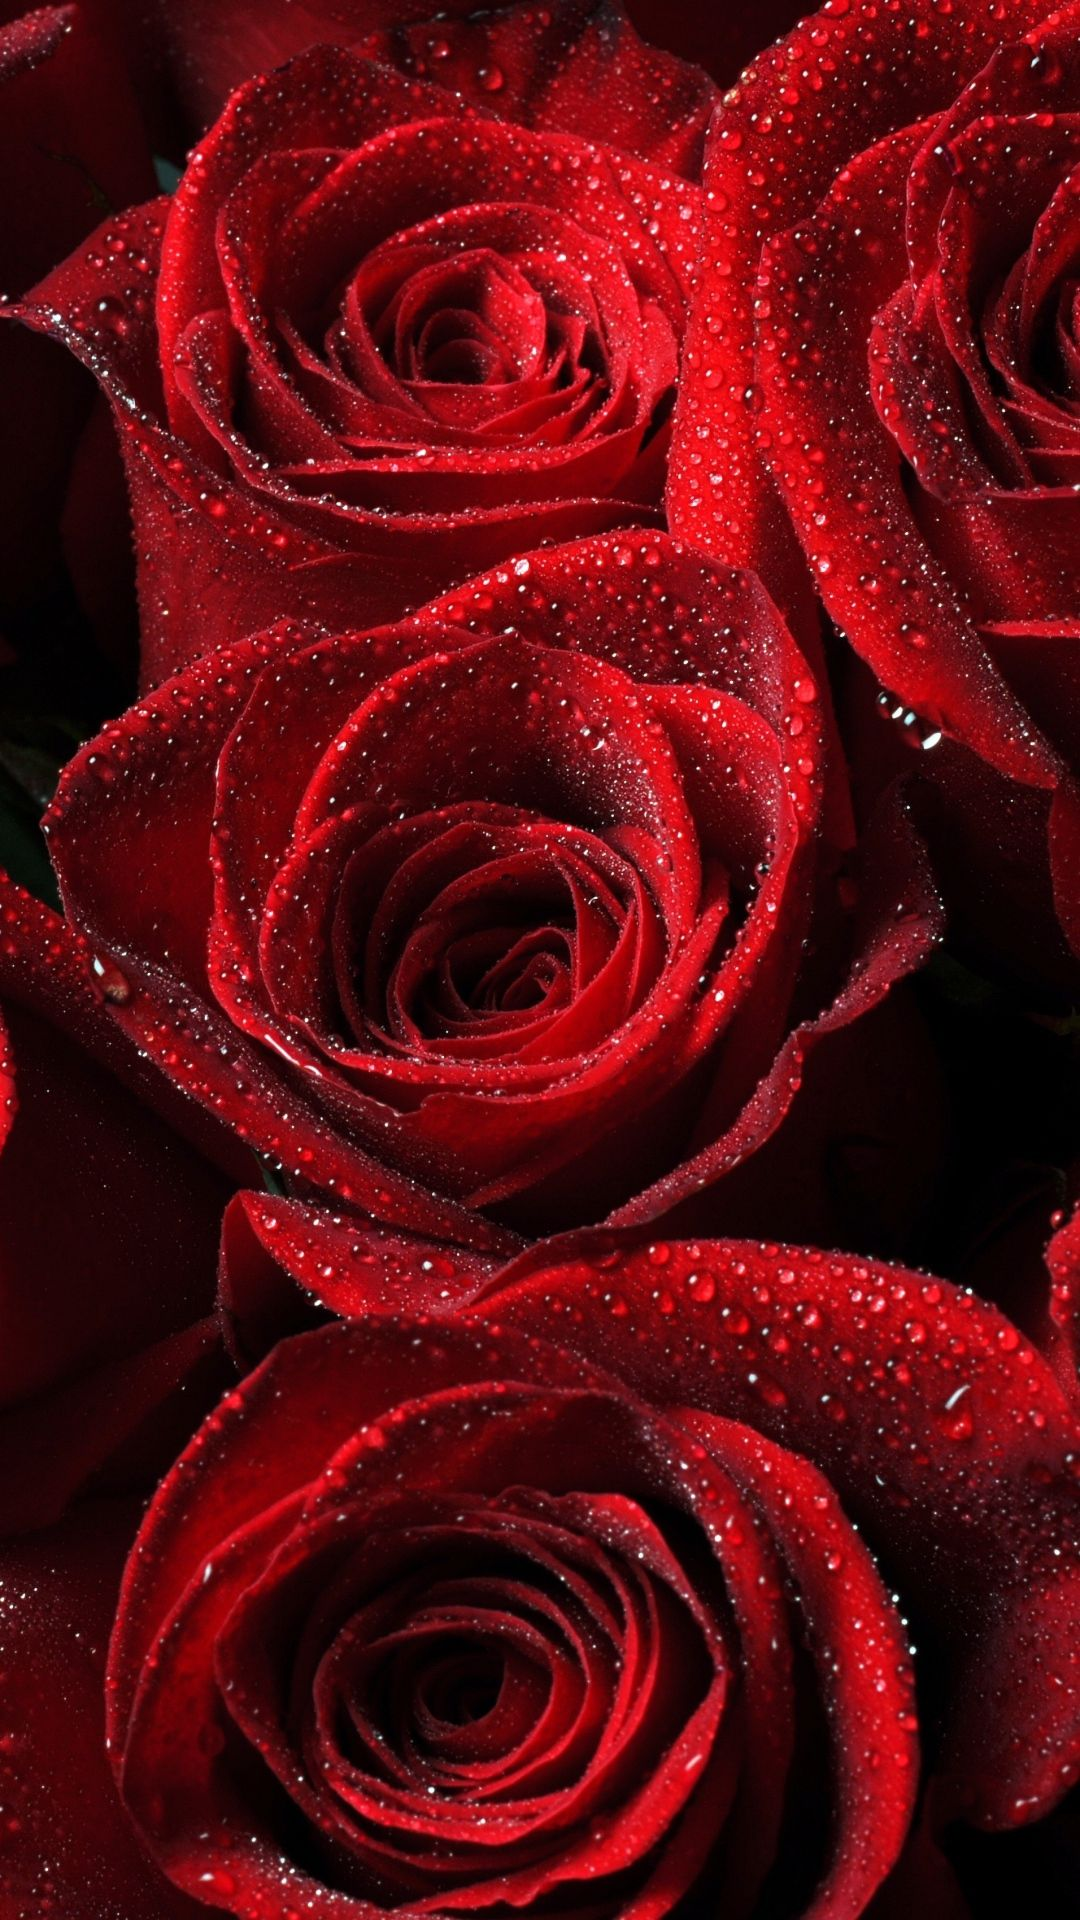 Tap And Get The Free App Nature Beautiful Roses Red Passion Cool Blooming Flowers Romantic Present Hd Iphone 6 Red Roses Wallpaper Rose Wallpaper Red Roses